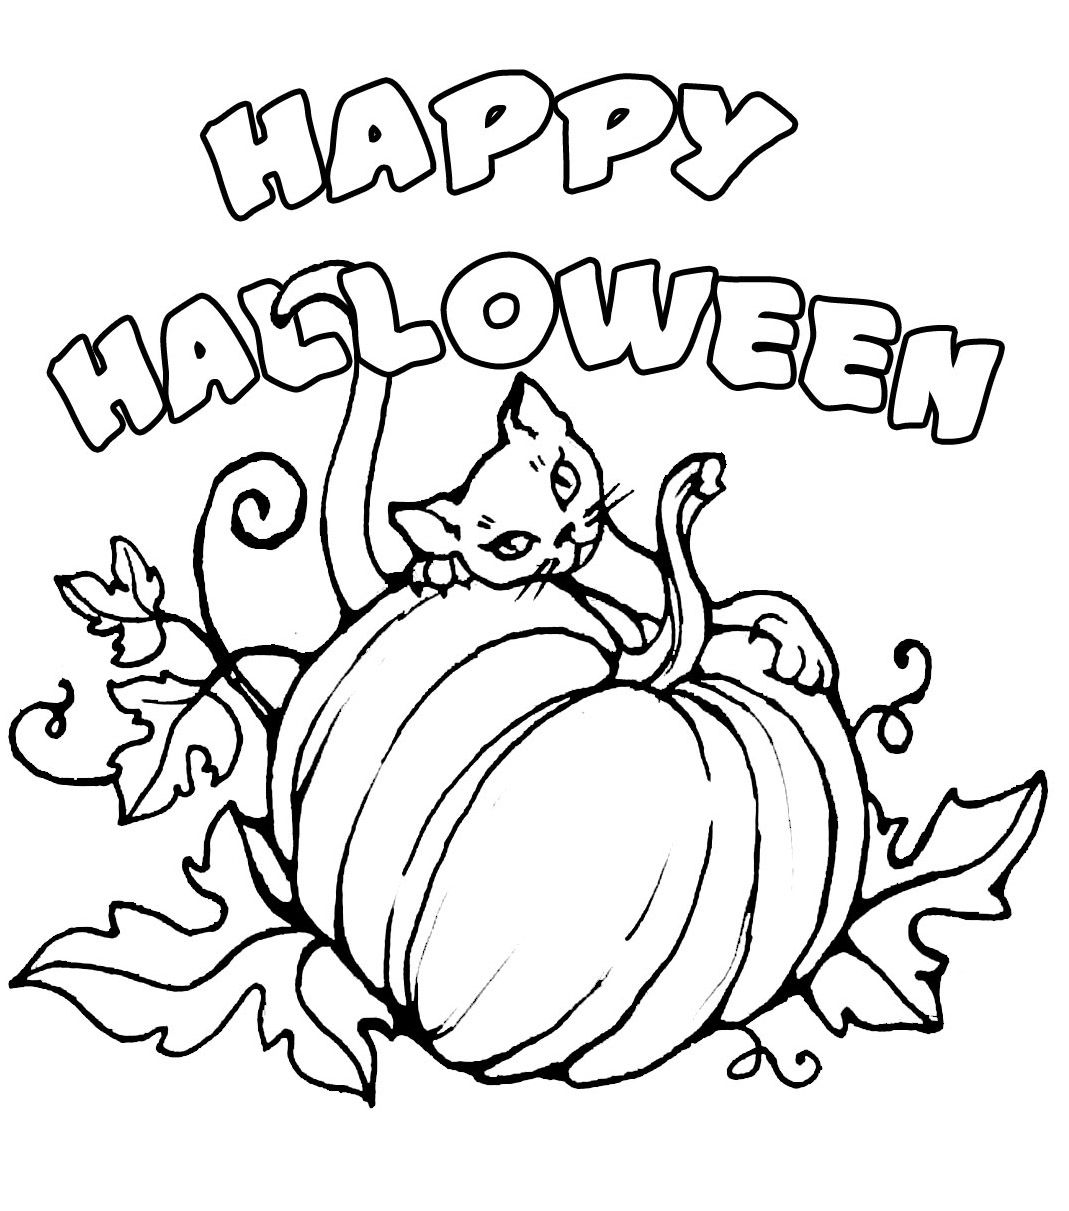 HALLOWEEN COLORING page of a cat with a pumpkin and a